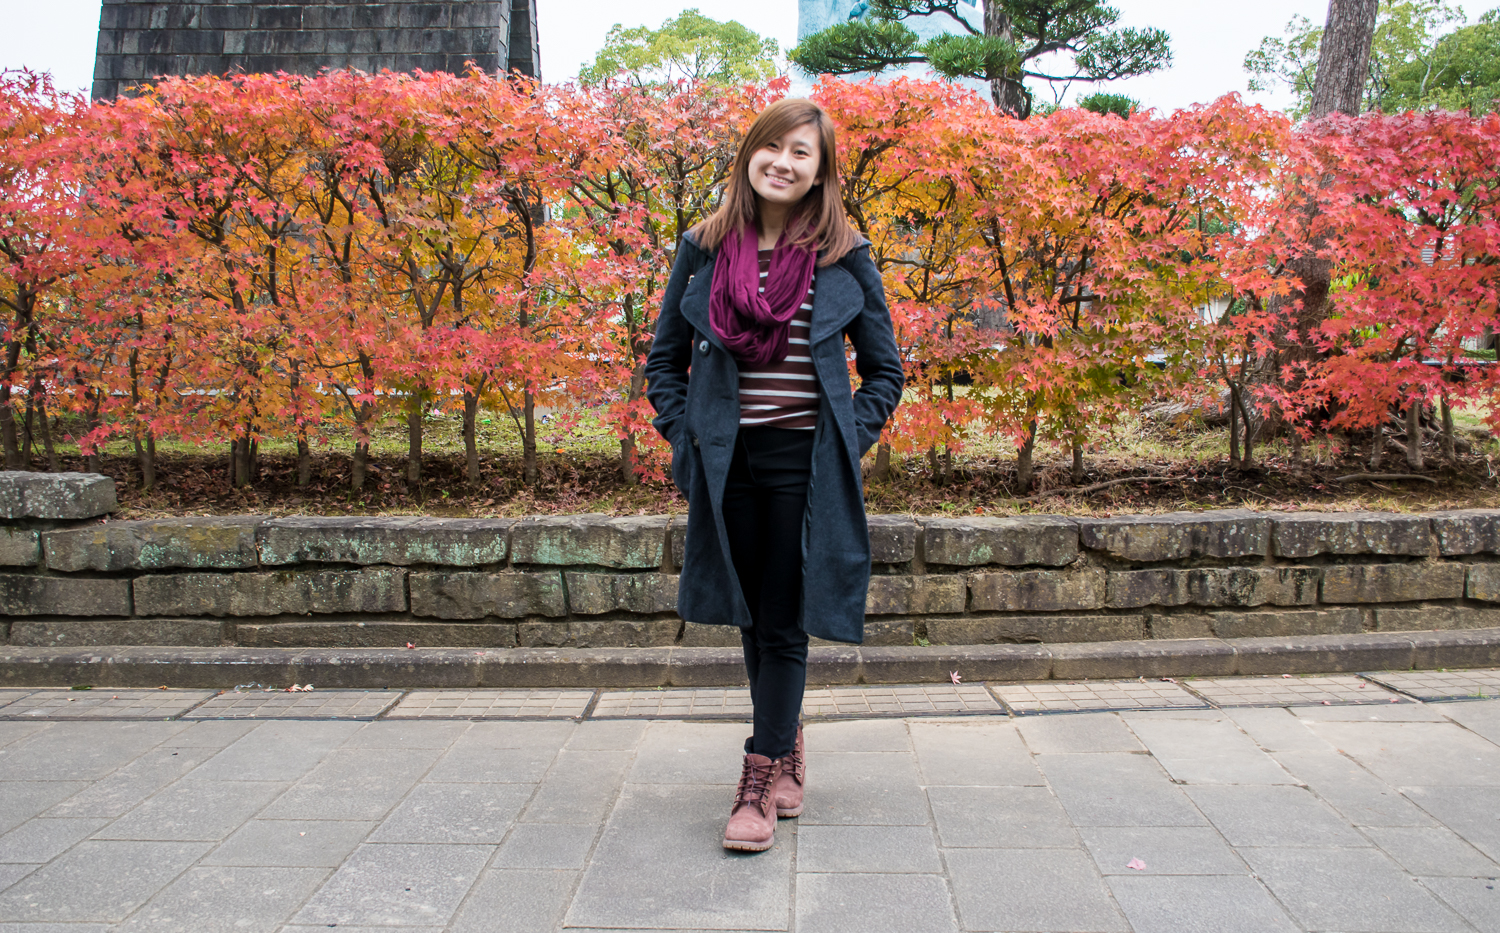 OOTD outfit in nagasaki peace park